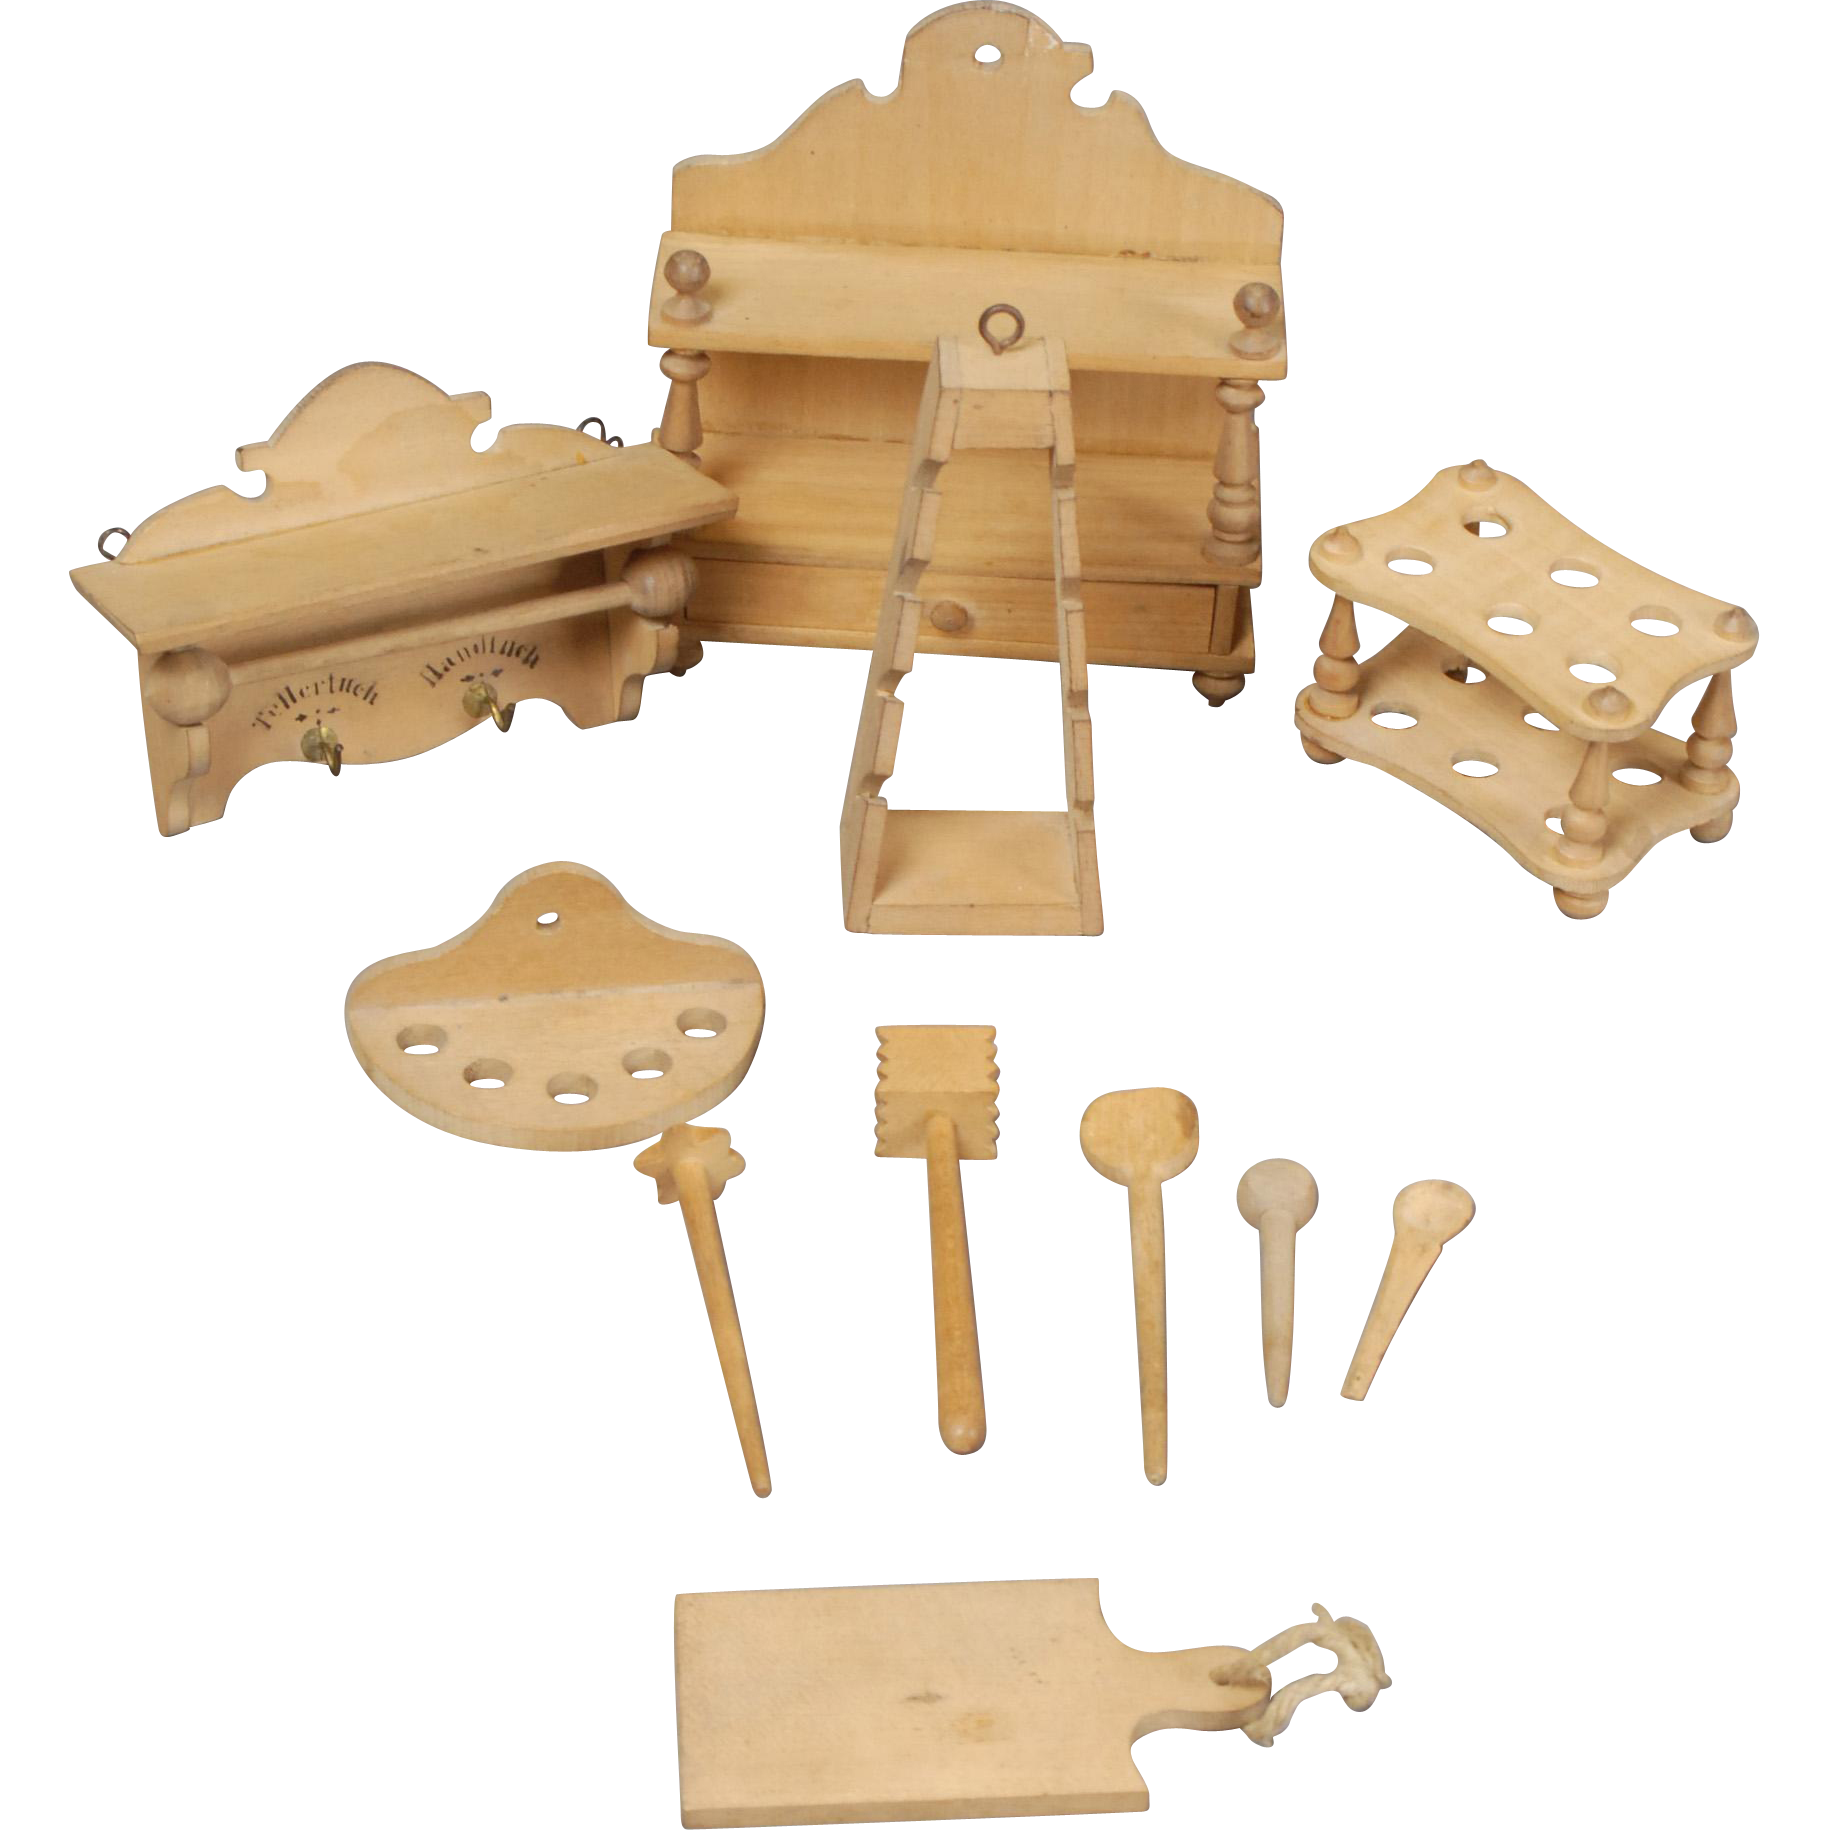 Carmel Kitchen Expansion: Wooden Accessories For Larger-scale Dollhouse Kitchen From